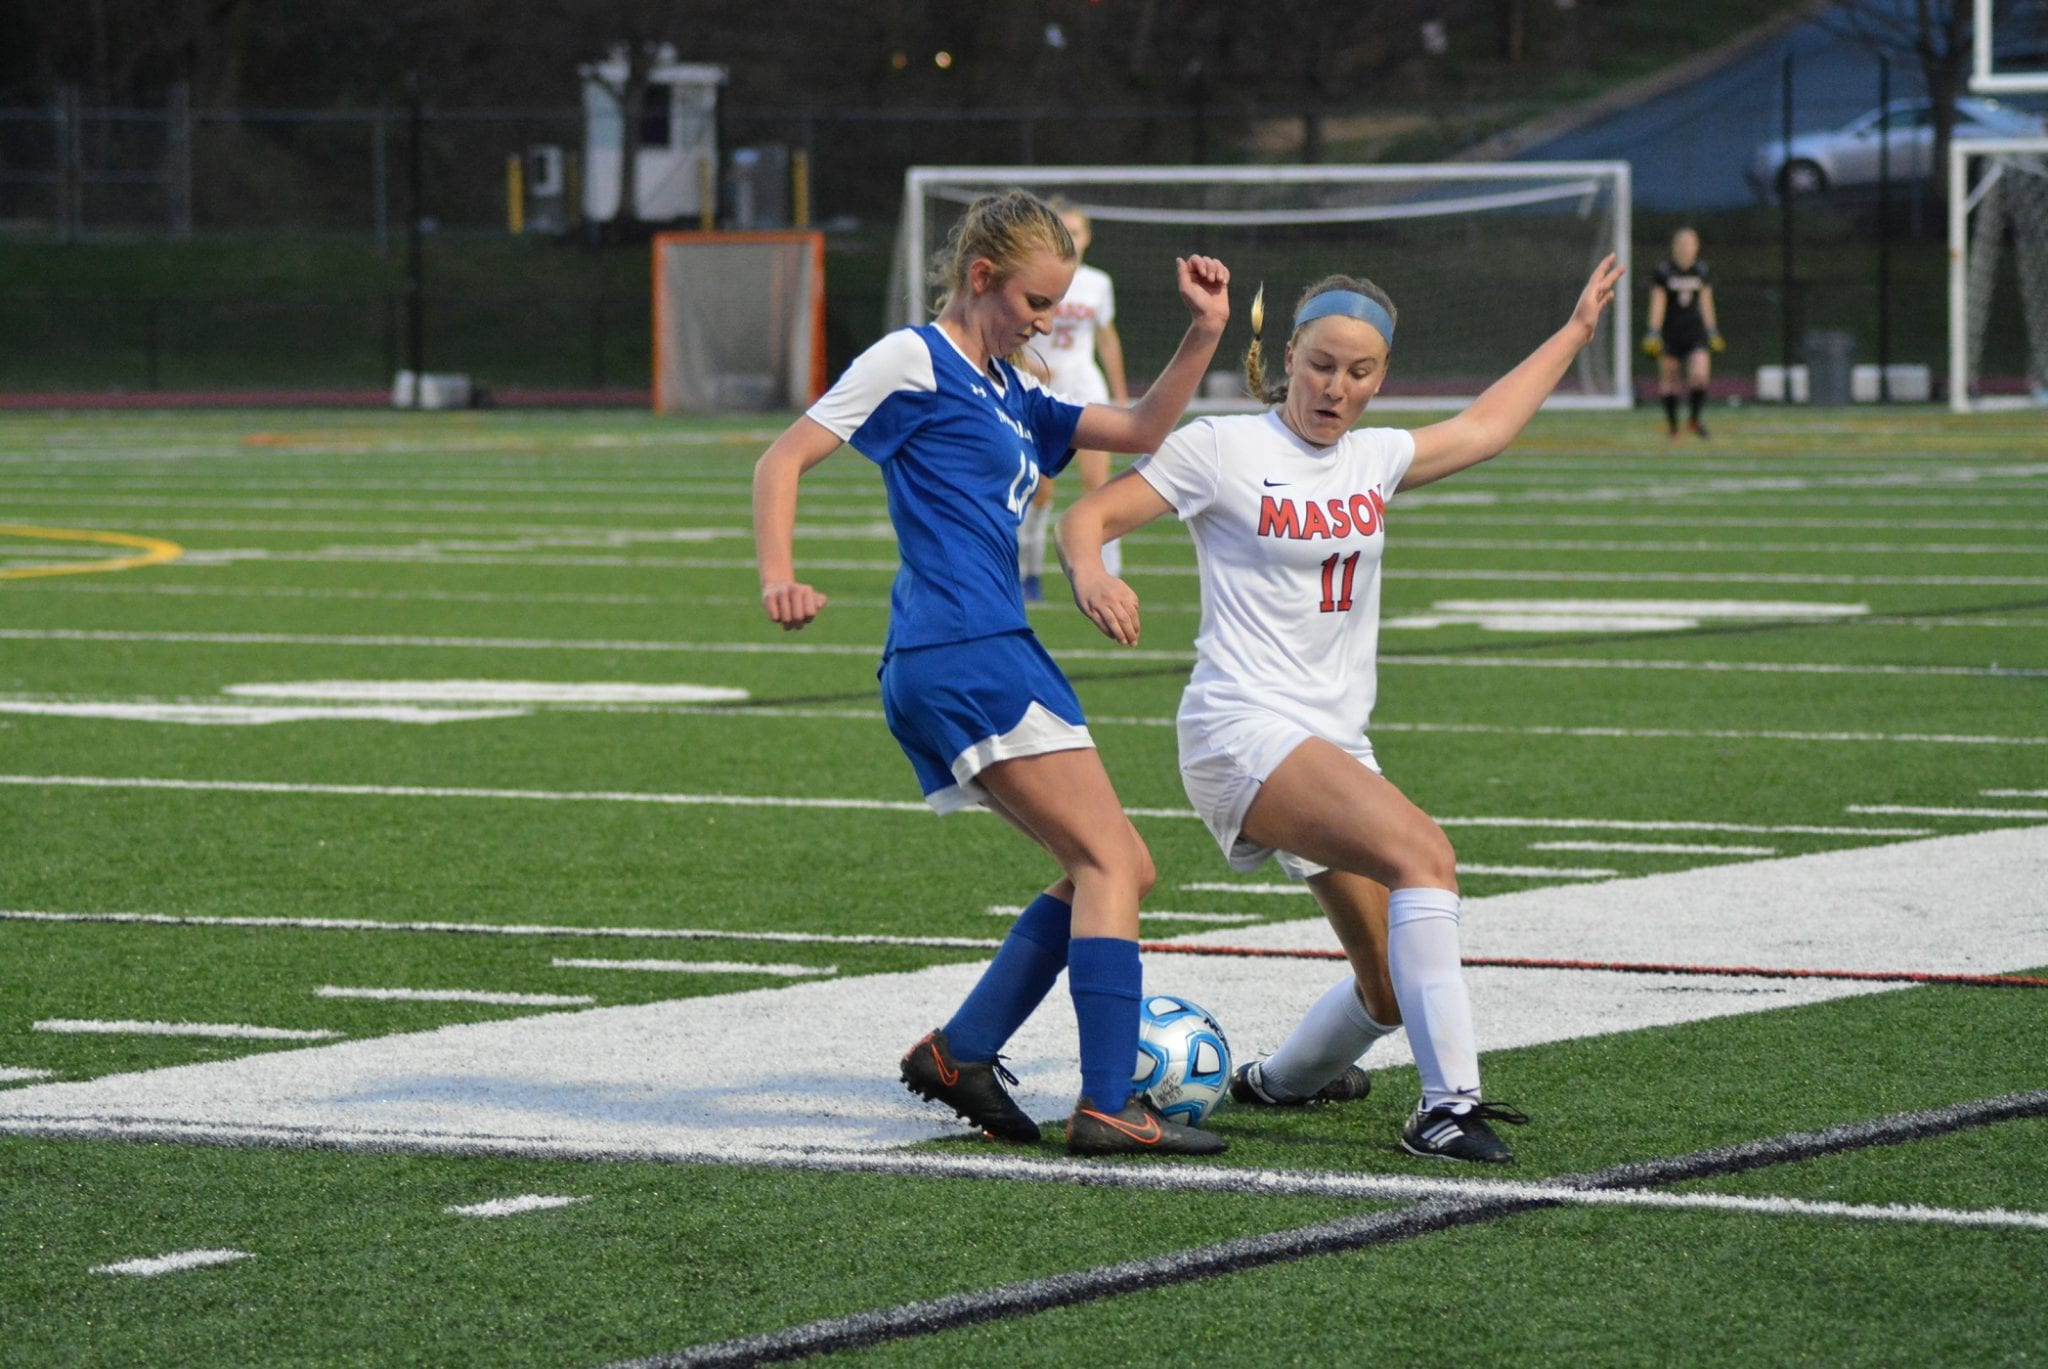 George Mason offensive wing Victoria Rund fights for ball control during the Mustangs' 4-2 victory over Madison High School Tuesday. (Photos: Carol Sly)